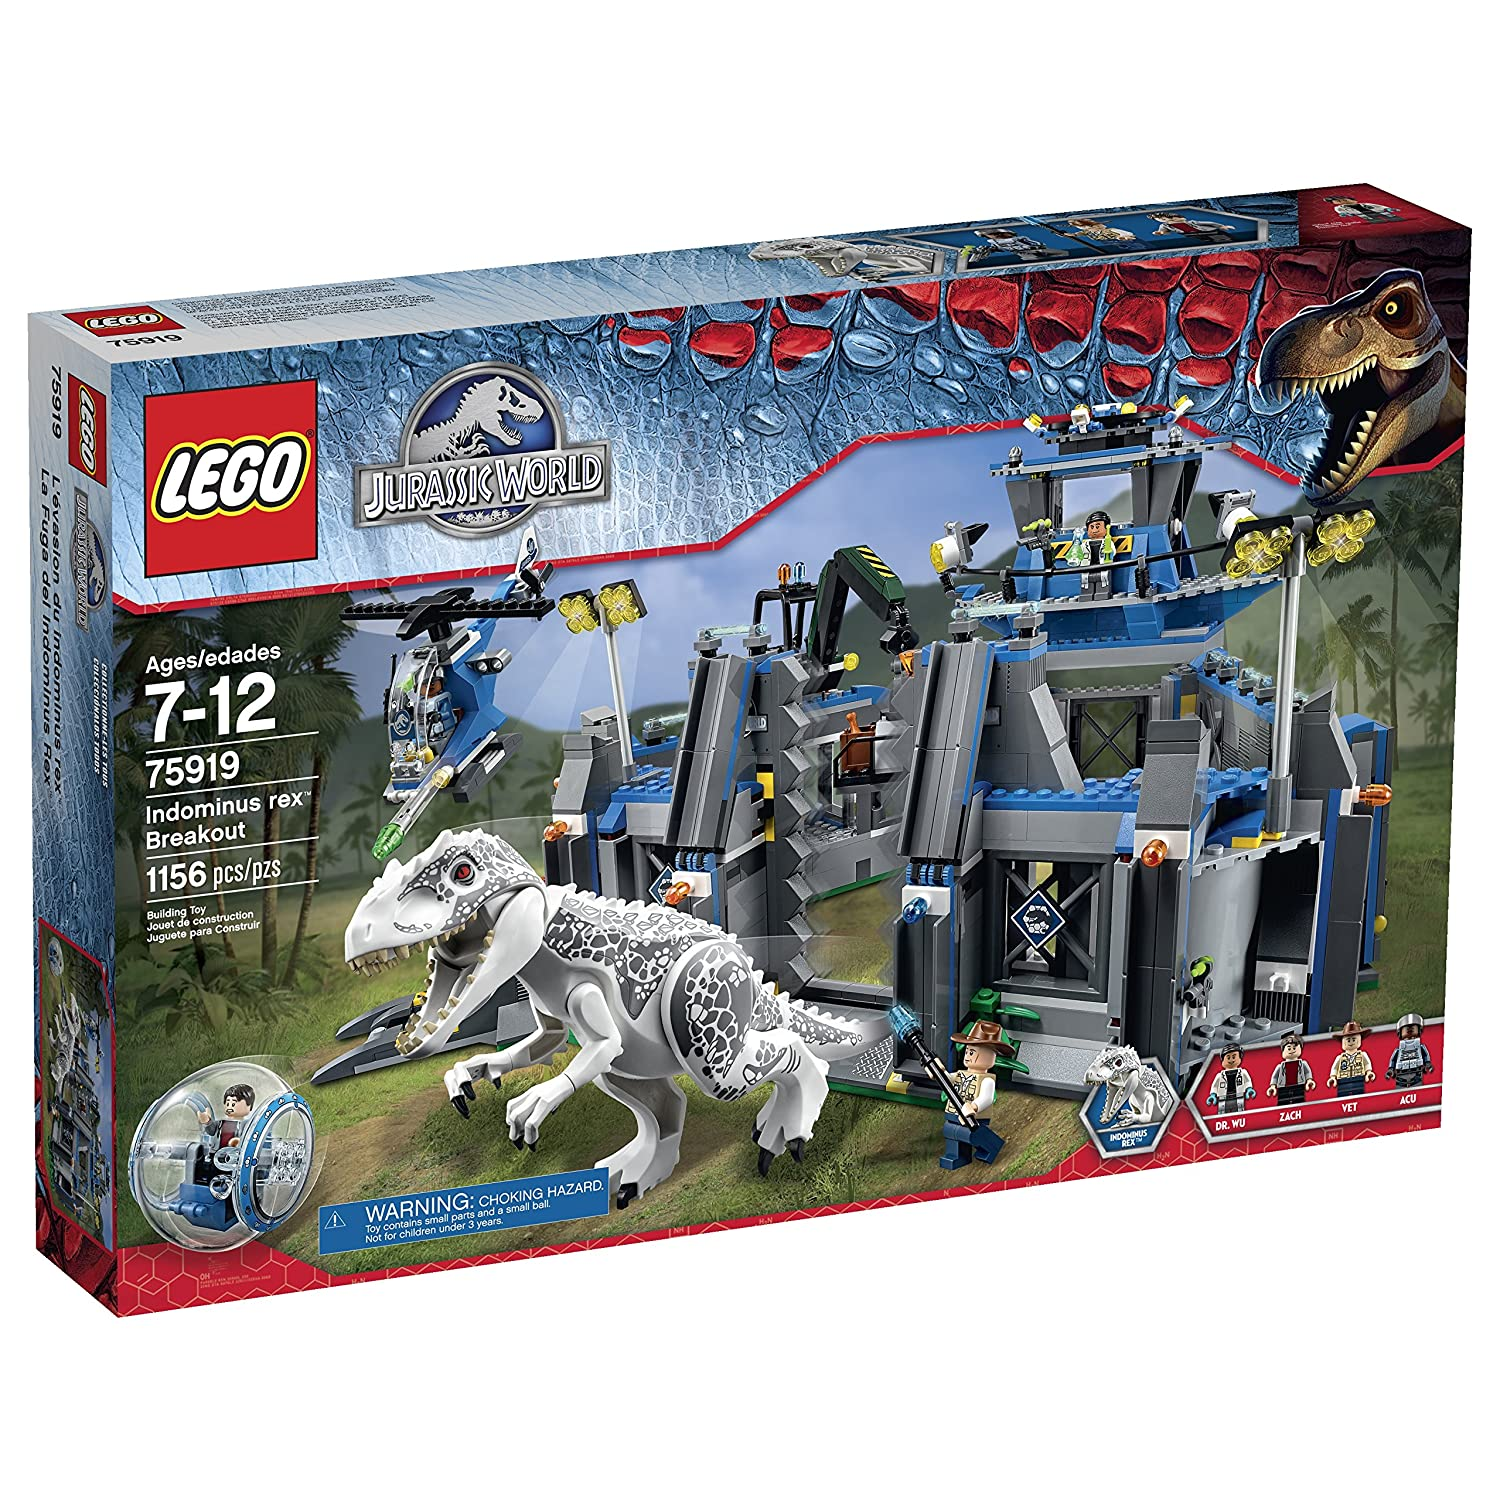 Top 9 Best Lego Jurassic Park Sets Reviews in 2020 3